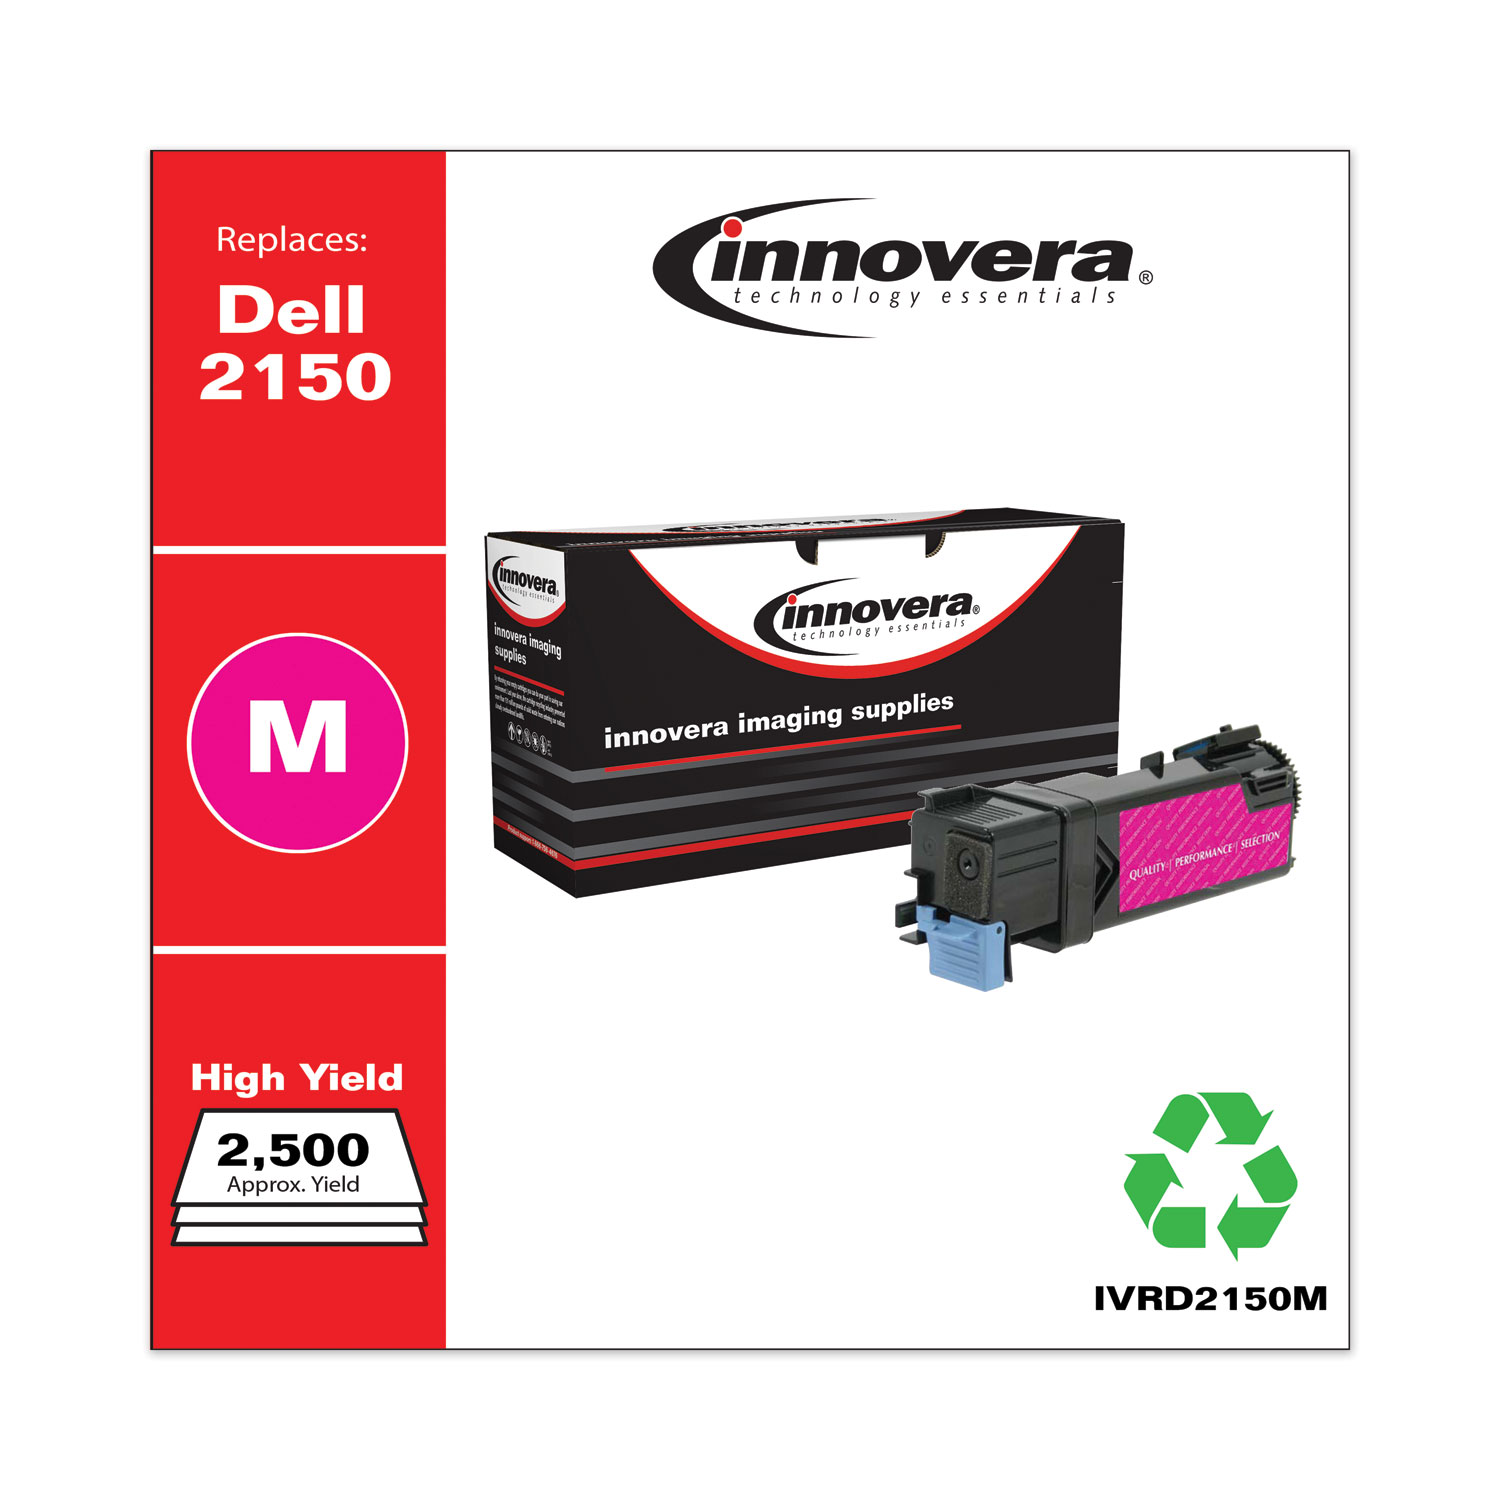 Remanufactured Magenta High-Yield Toner, Replacement for Dell 2150 (331-0717), 2,500 Page-Yield IVRD2150M